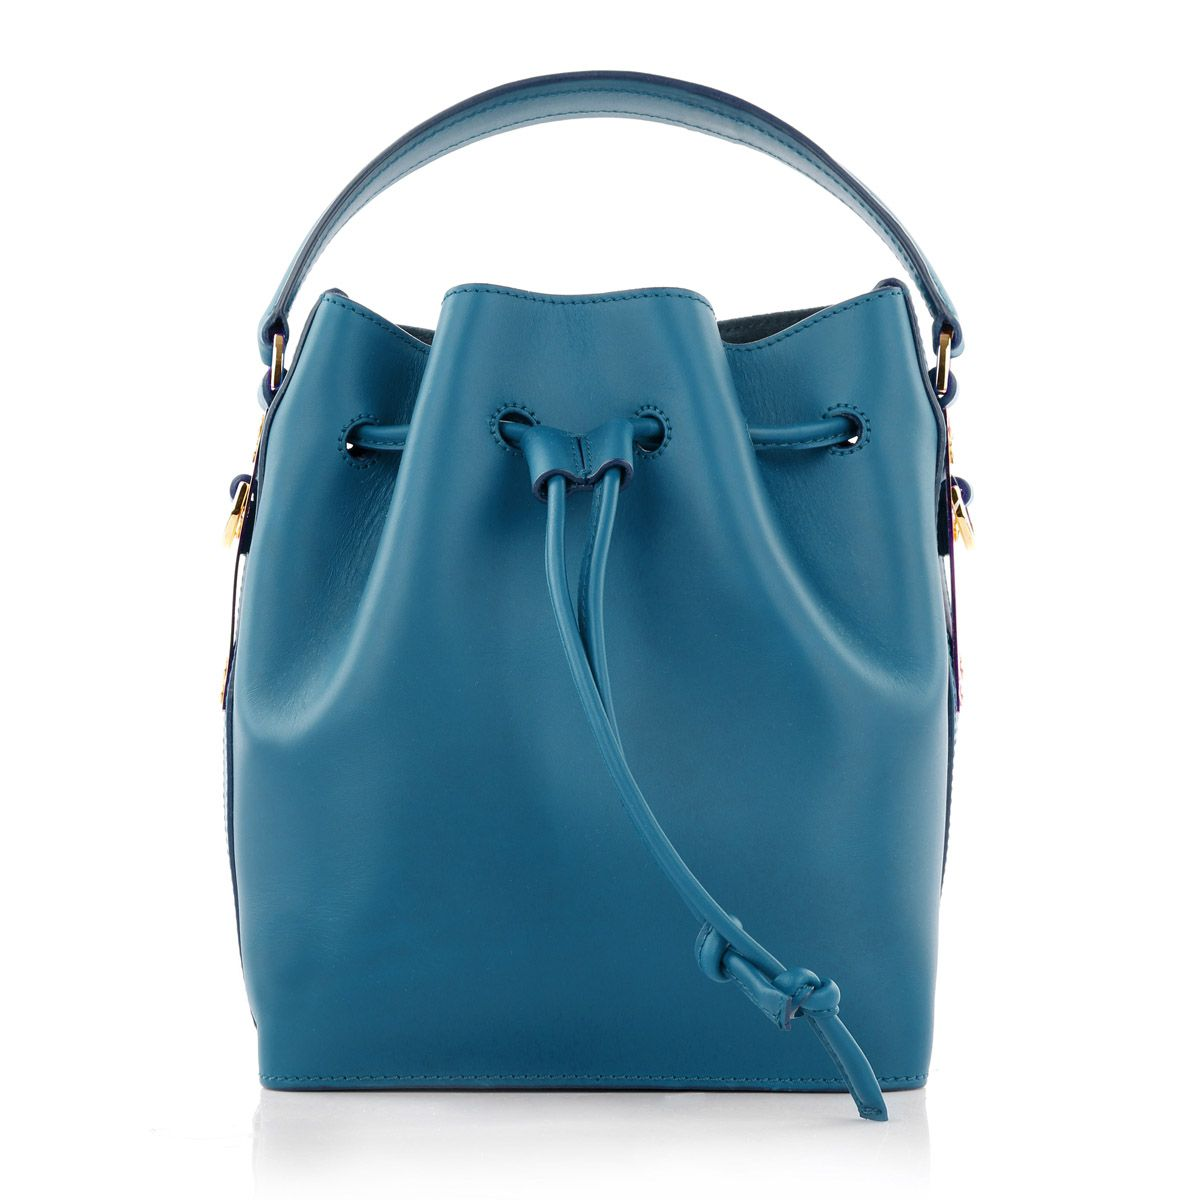 2e6ab4e54409 On trendfocus  Sophie Hulme the latest designer to watch in handbag heaven  with her Drawstring Bucket Bag Saddle S Teal Blue Fashionette.de